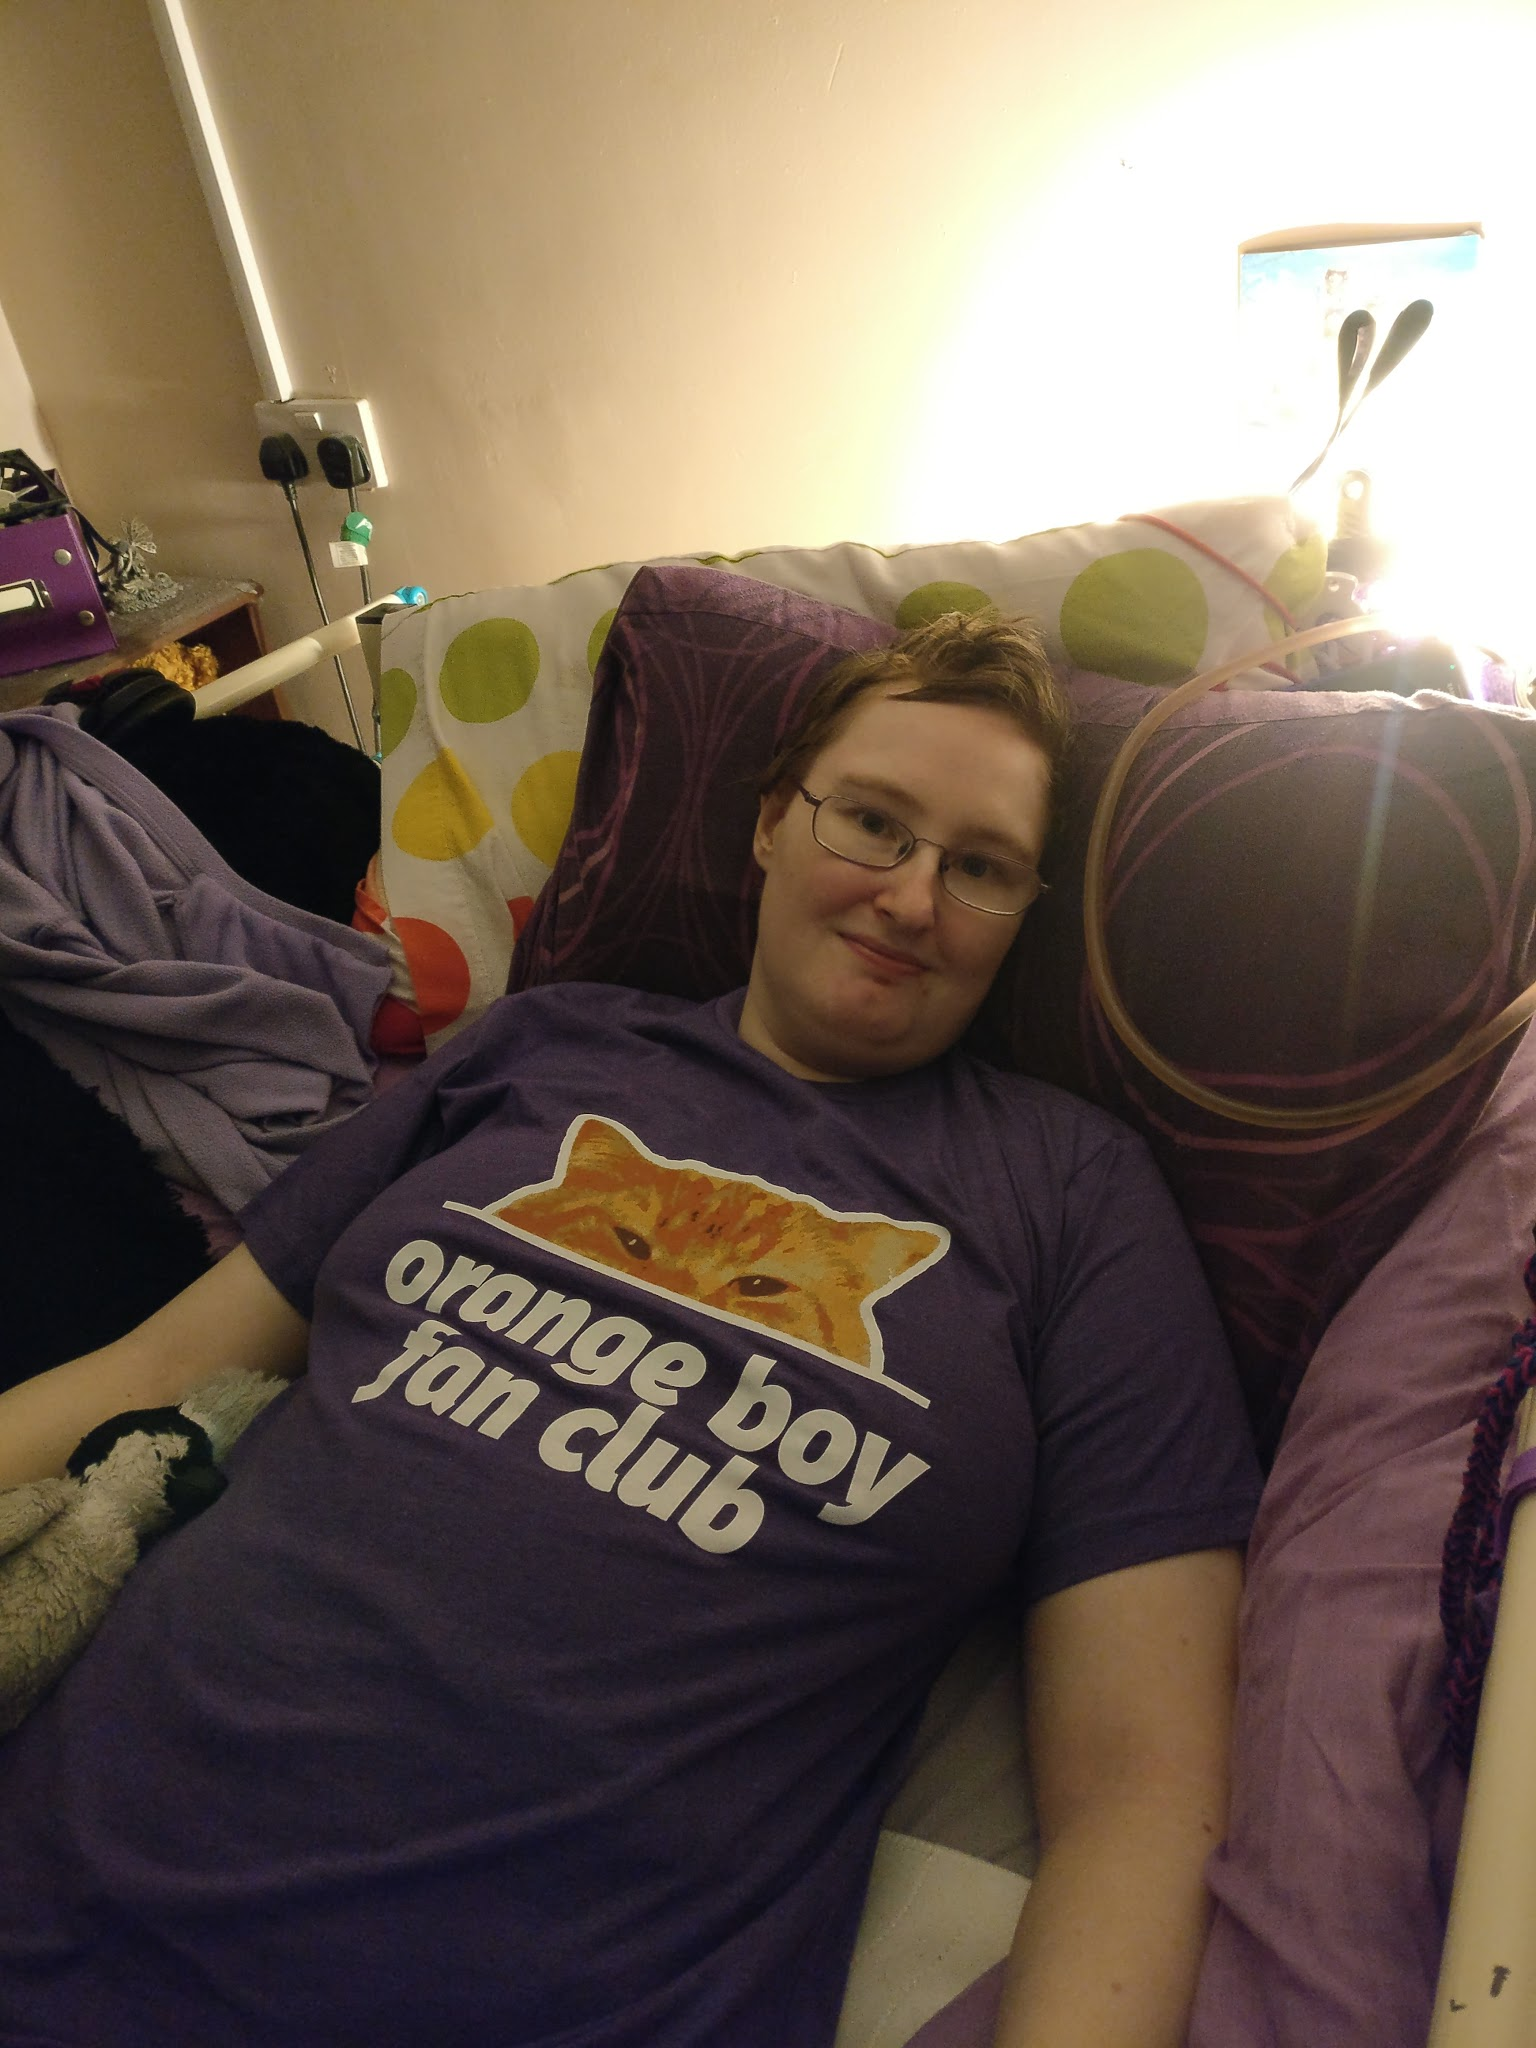 Danni is lying in bed, wearing a purple t-shirt with a picture of the top half of an orange cat's face (Bilbo), with orange boy fan club written underneath in white.